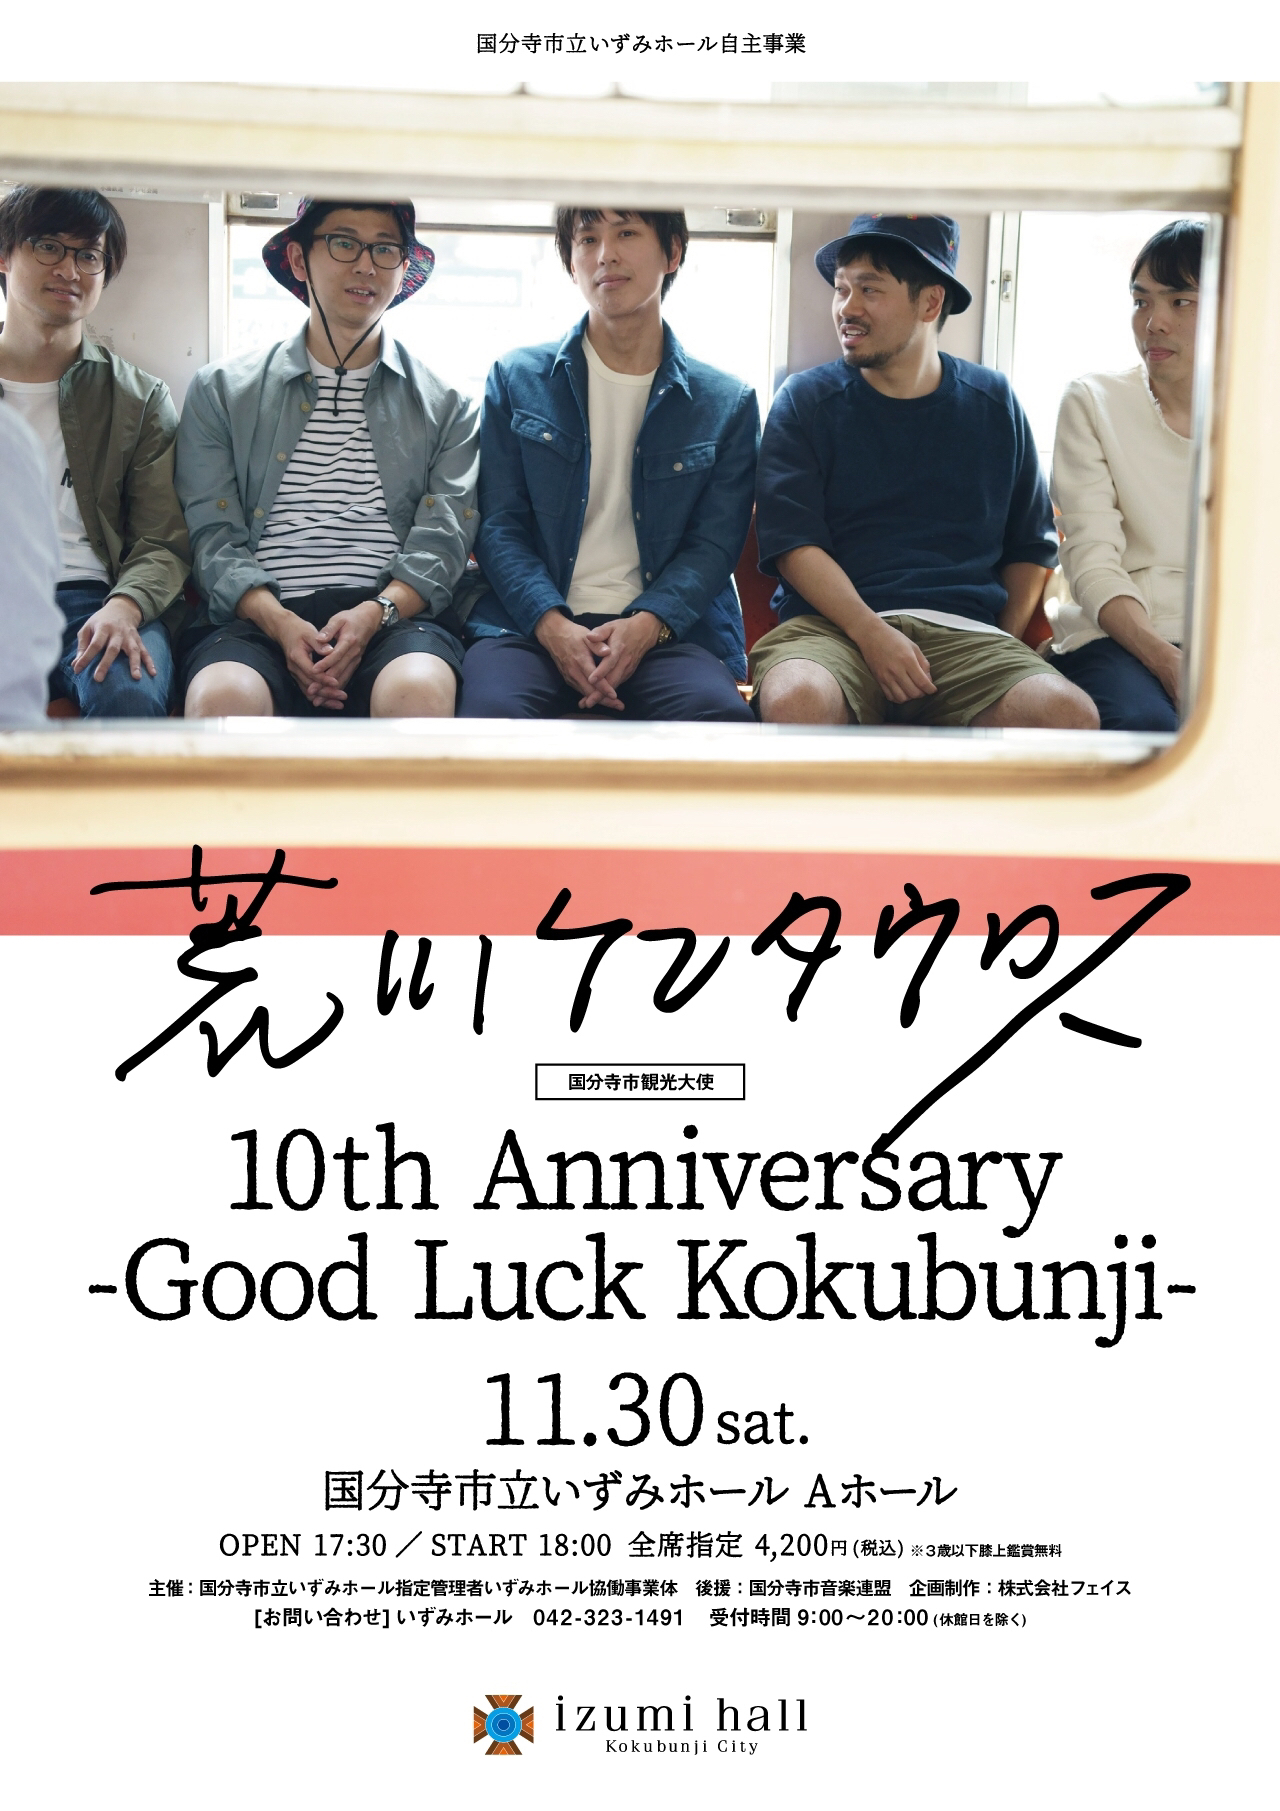 『荒川ケンタウロス 10th Anniversary - Good Luck Kokubunji -』